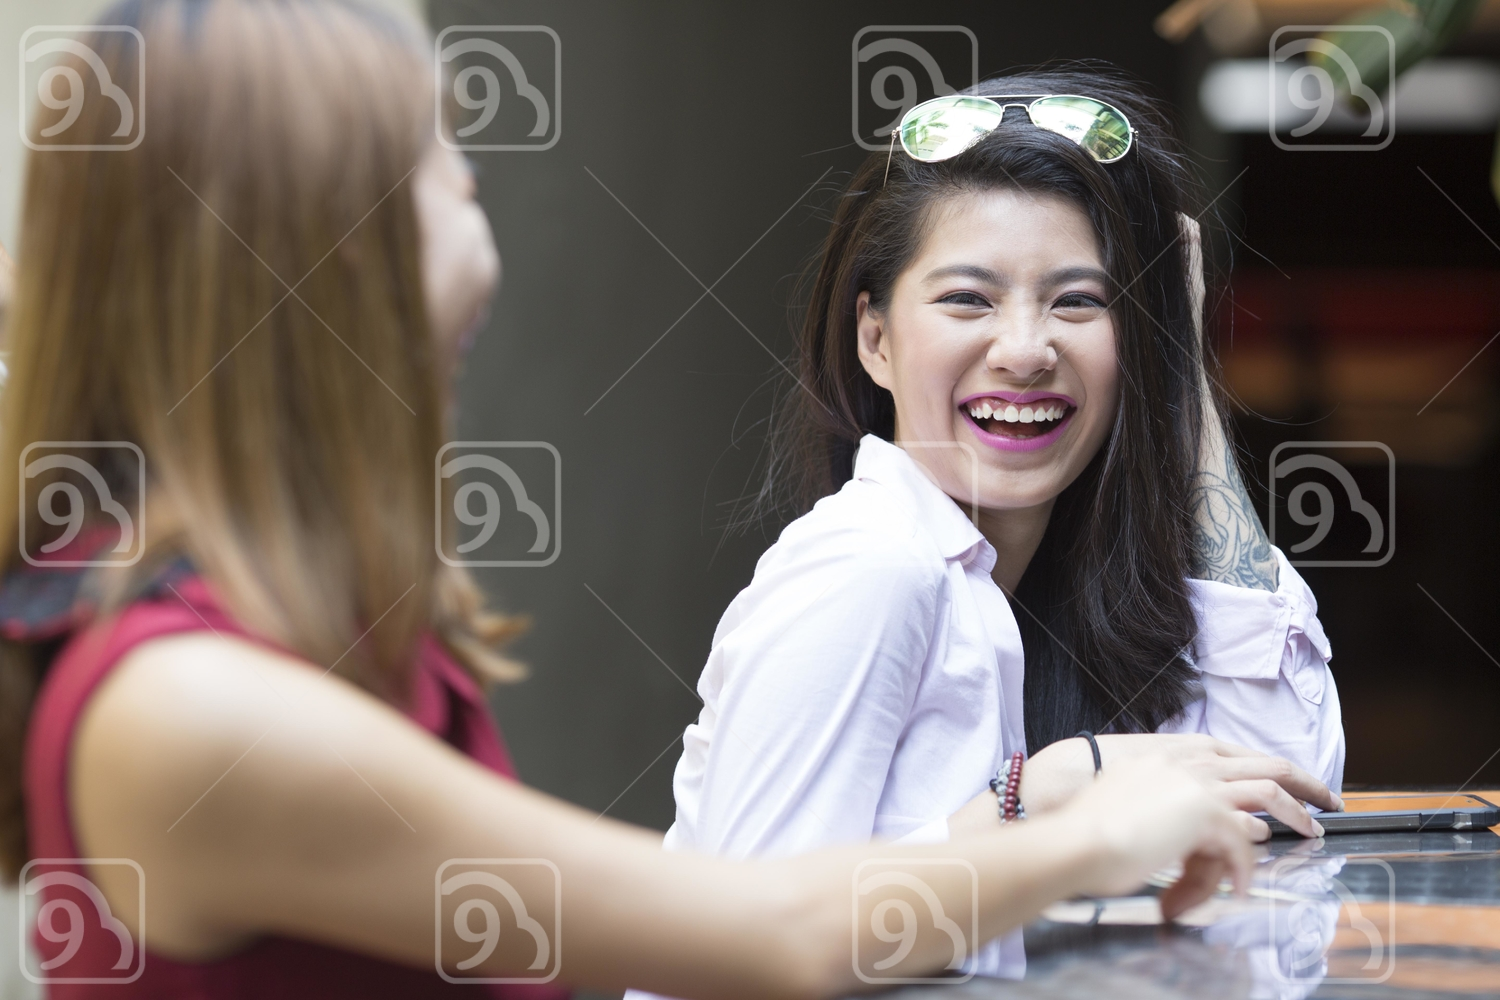 Young women laughing